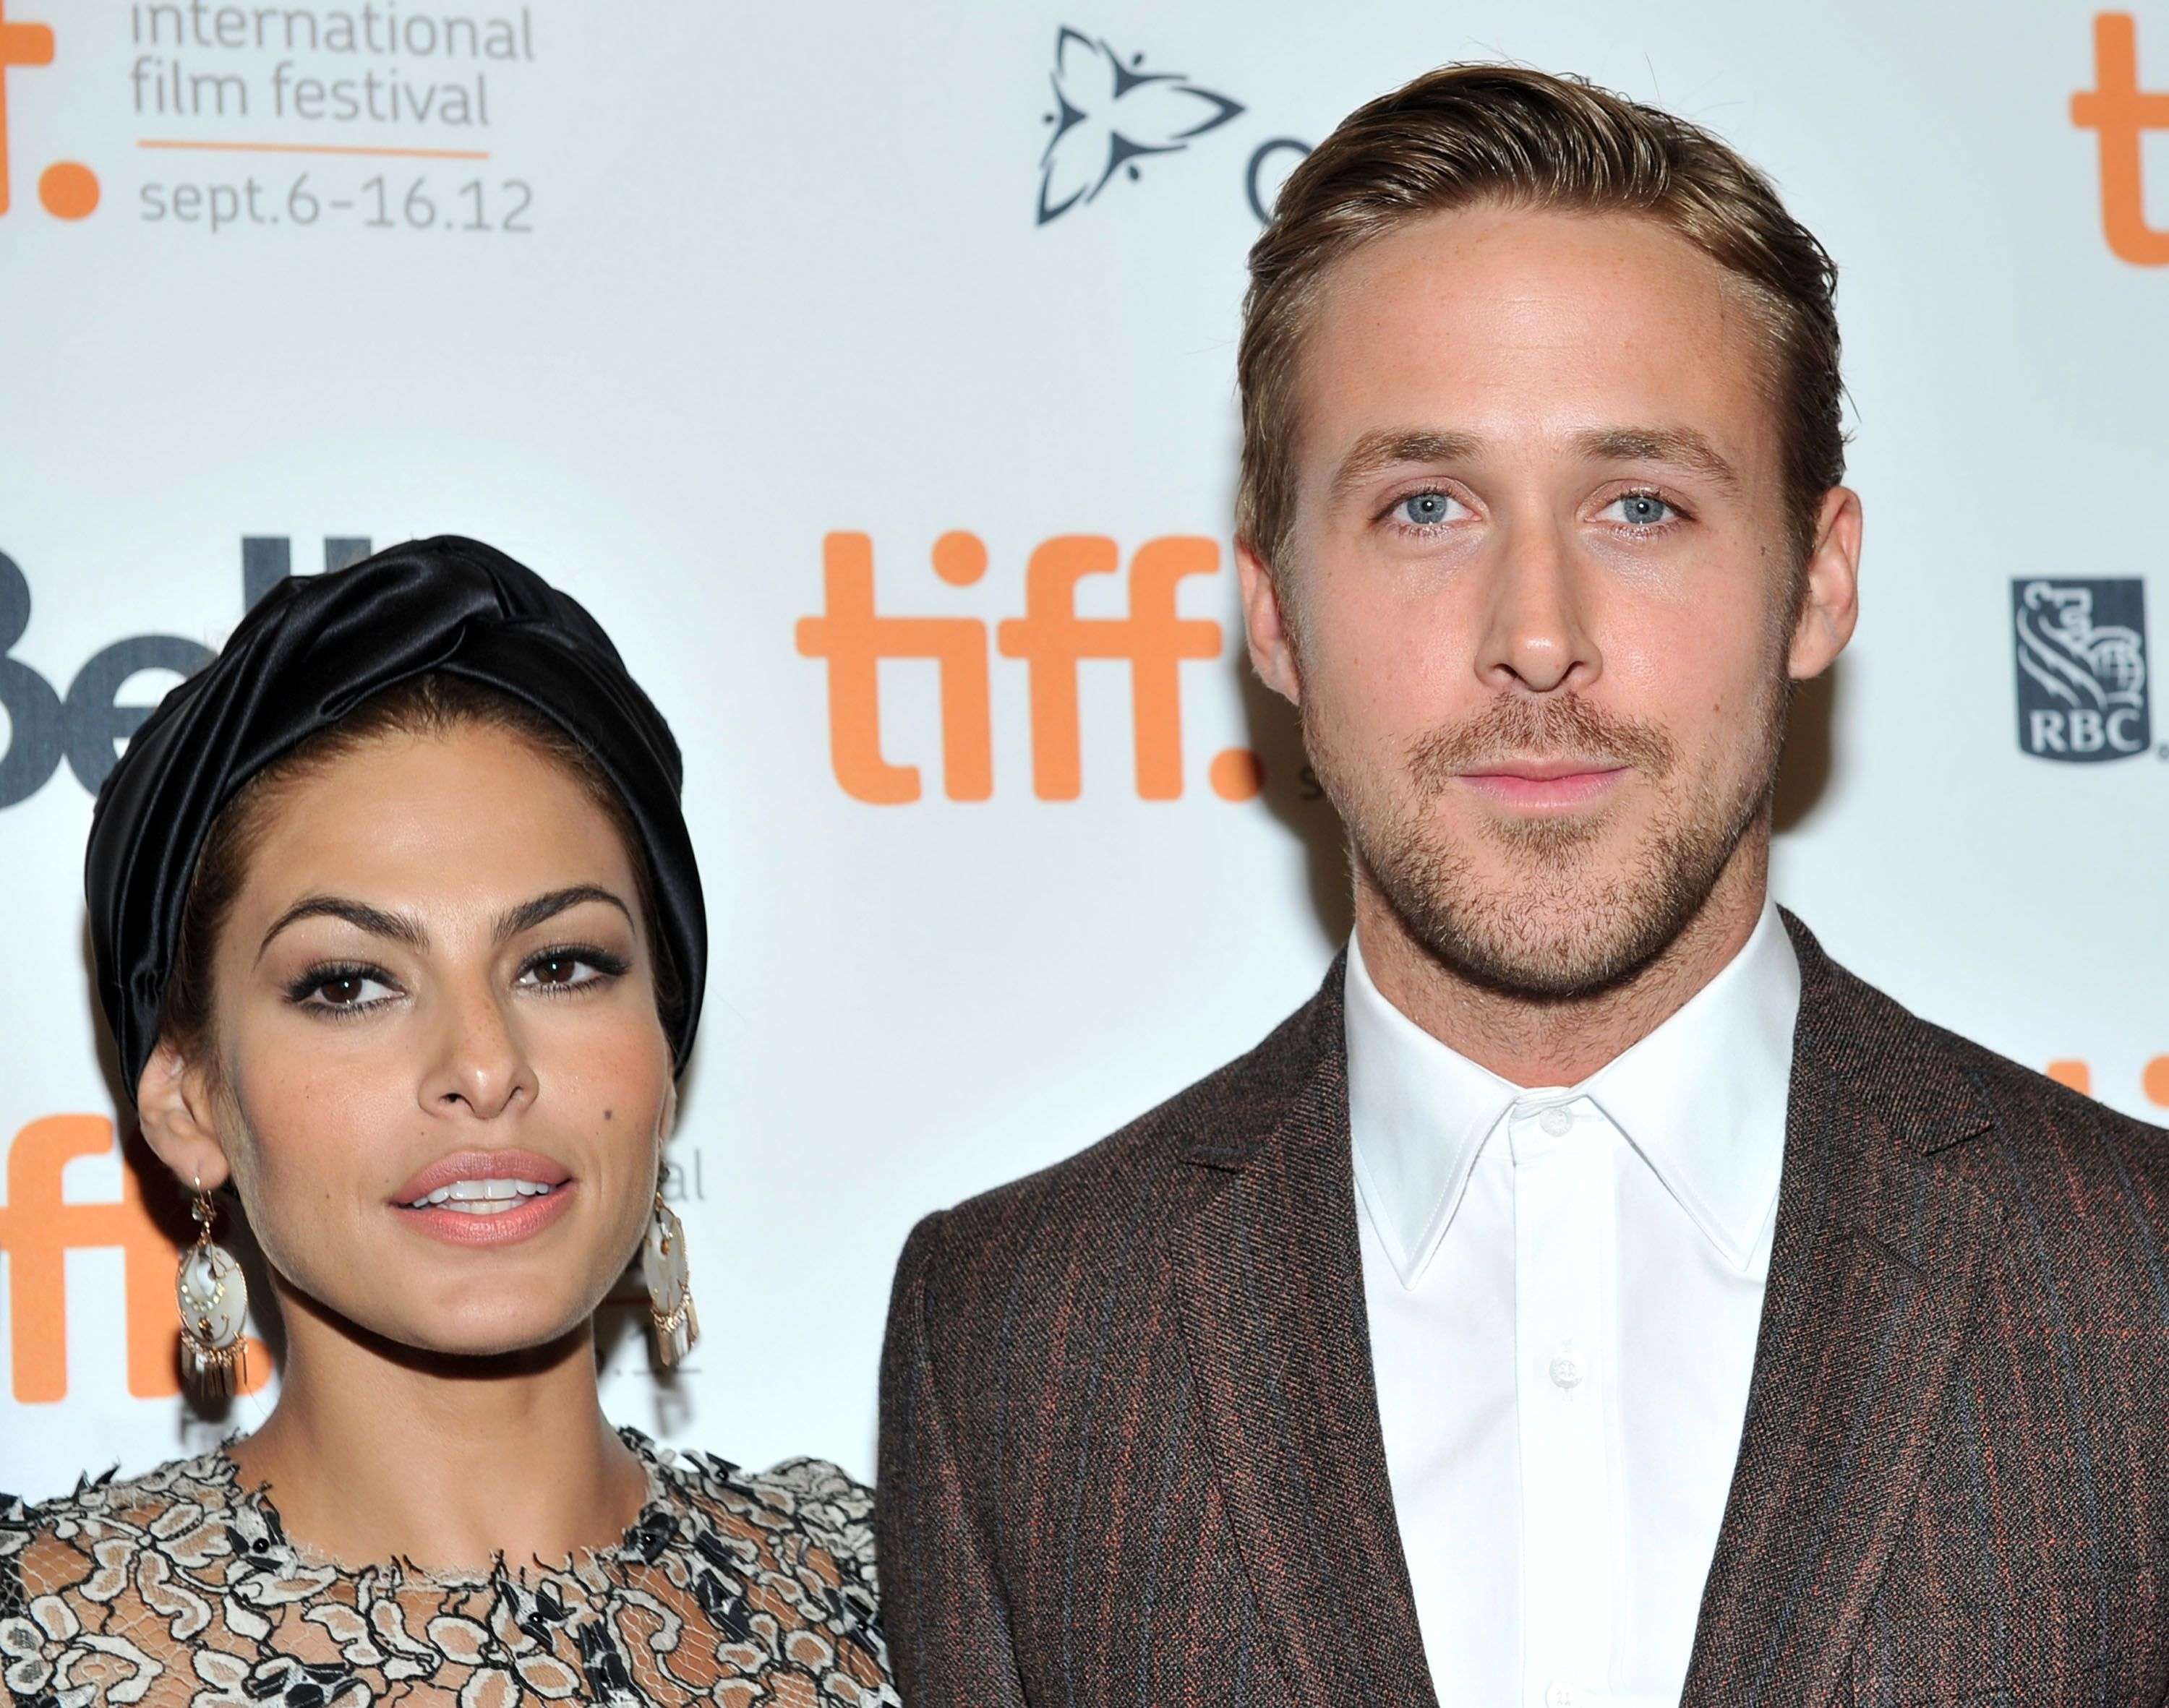 Ryan Gosling And Eva Mendes: What The Couple Say About Each Other